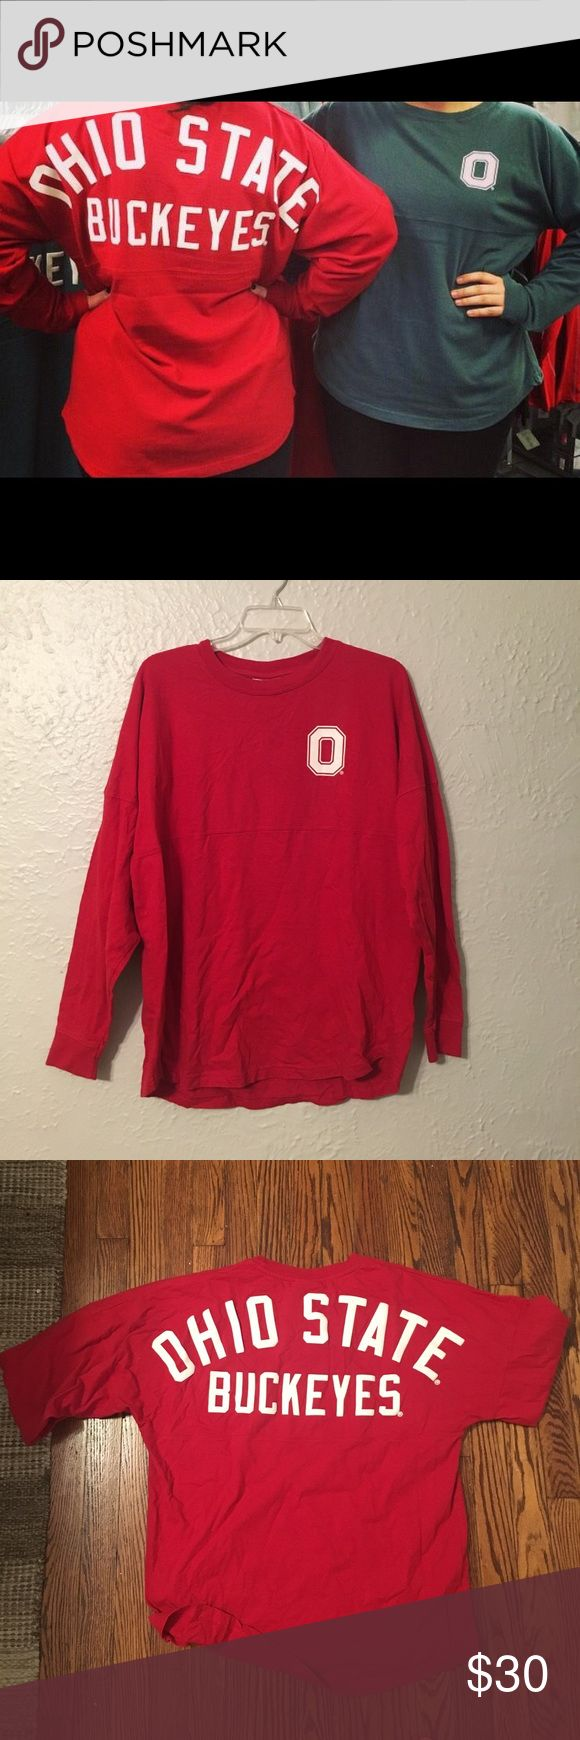 """Red Ohio state spirit jersey size small Red Ohio state spirit jersey size small ; brand is """"j America"""" from bookstore on OSU's campus j. america Tops"""